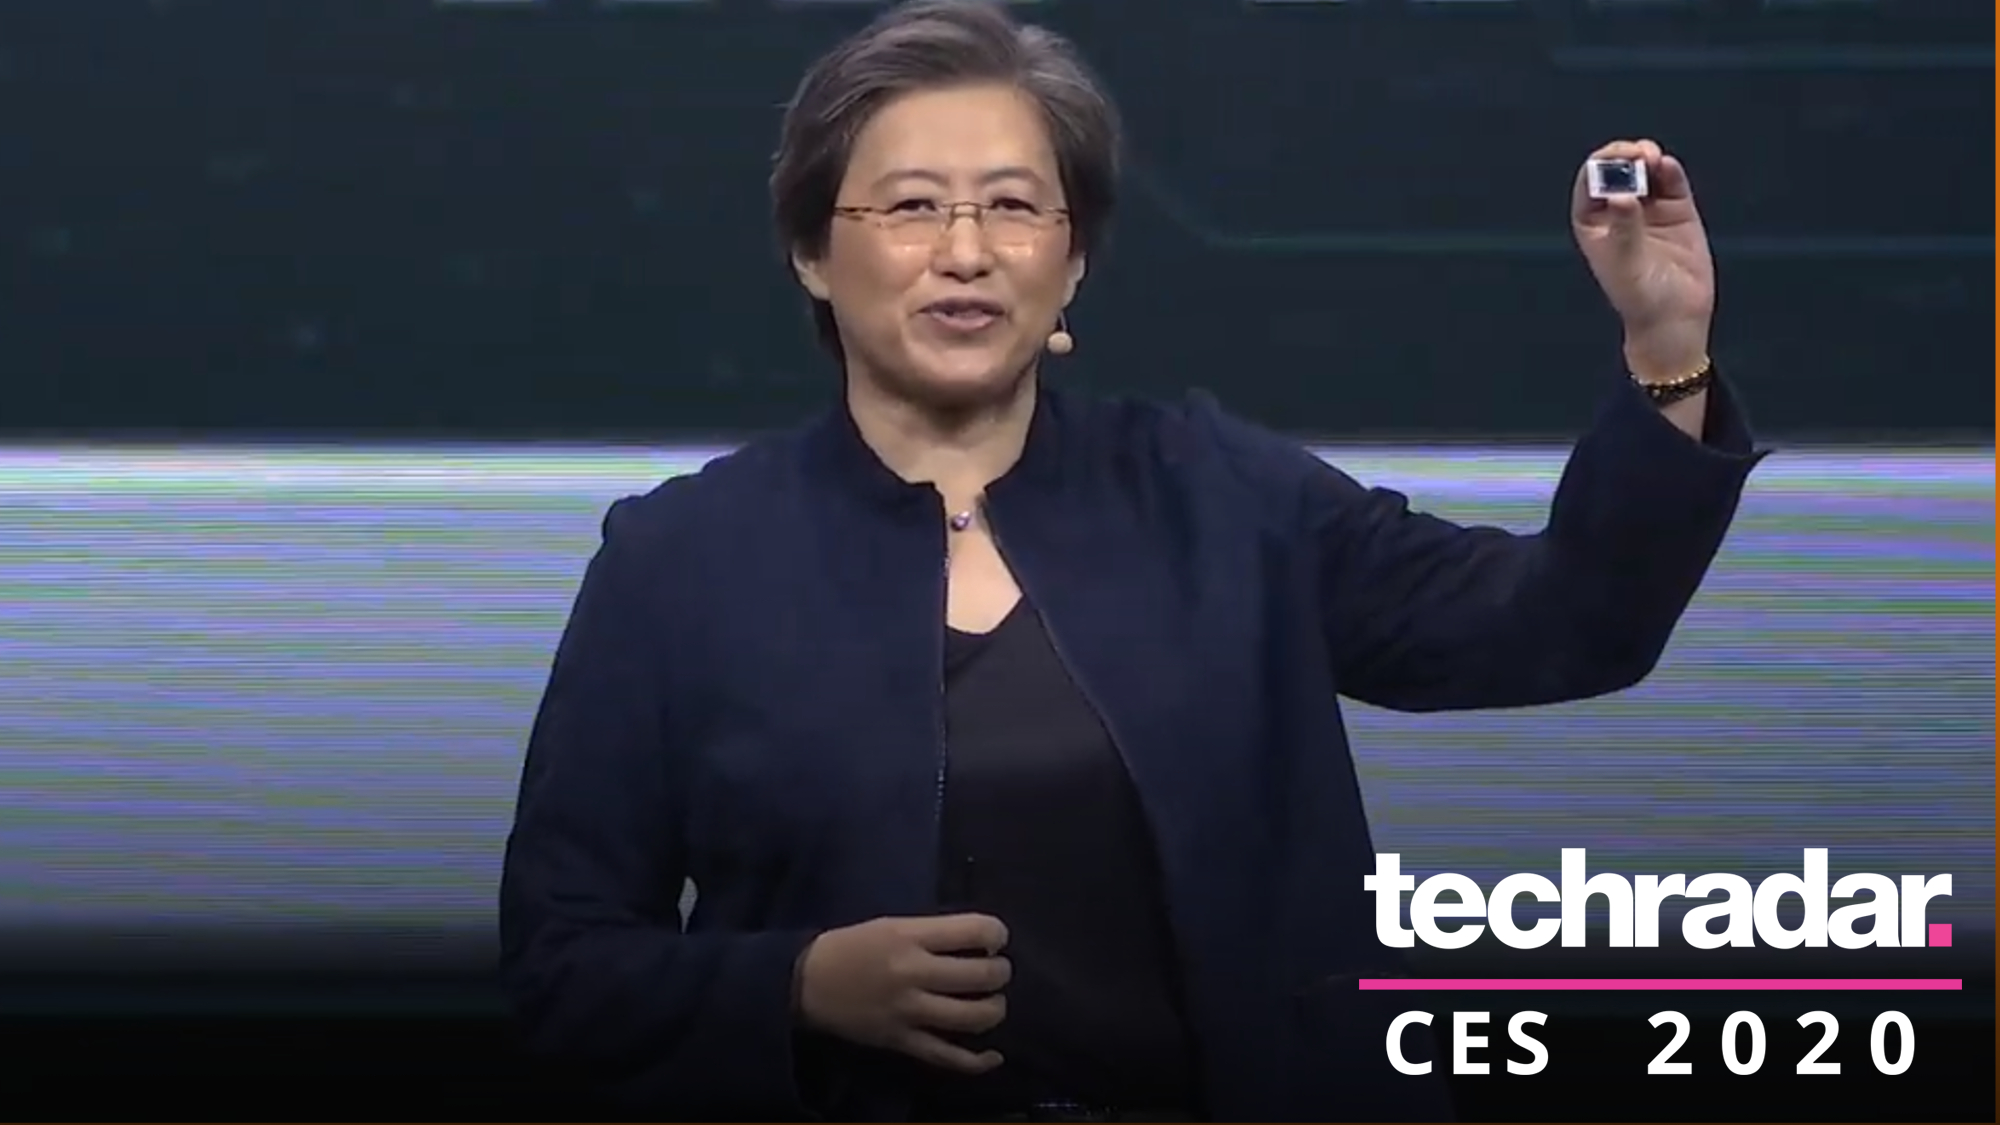 AMD takes on Intel at CES 2020 with Ryzen 4000 mobile CPUs for laptops